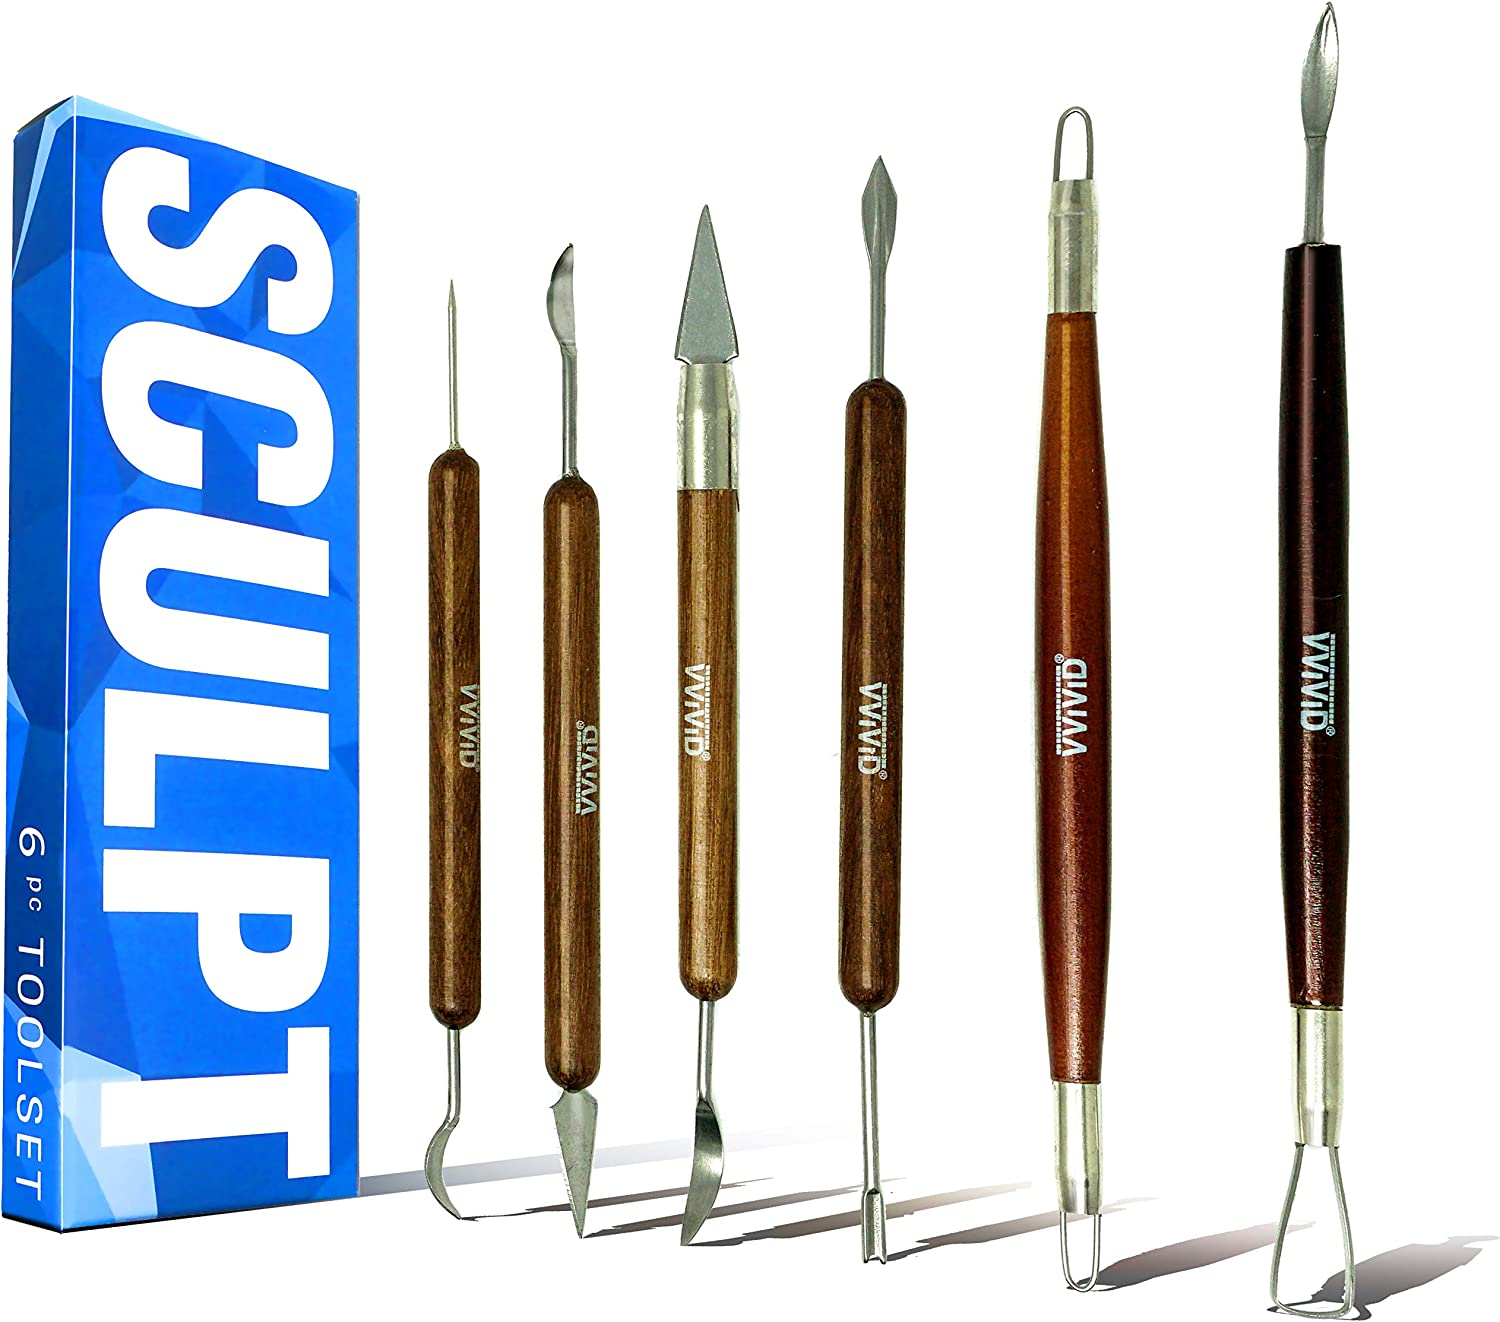 VViViD Sculpt Clay /& Ceramic Double-Ended Hand Tool Sets 5 Piece Set